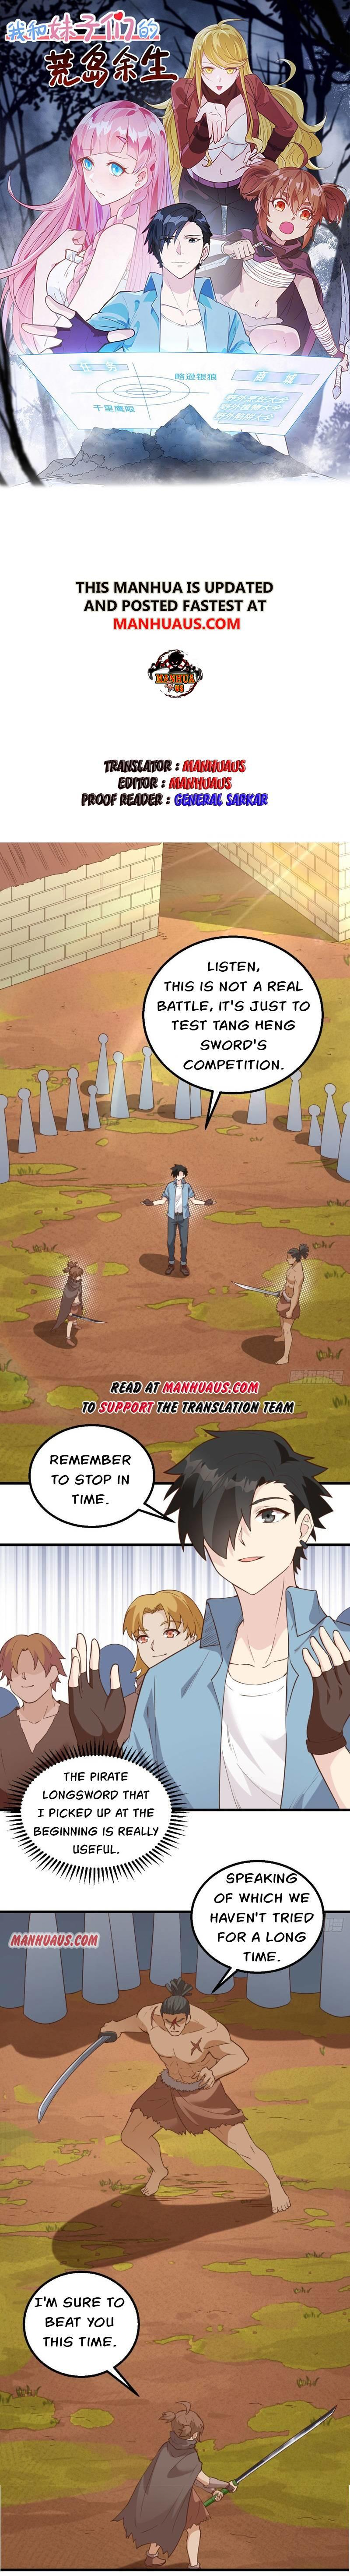 Survive On A Deserted Island With Beautiful Girls Chapter 96 page 1 - Mangakakalots.com